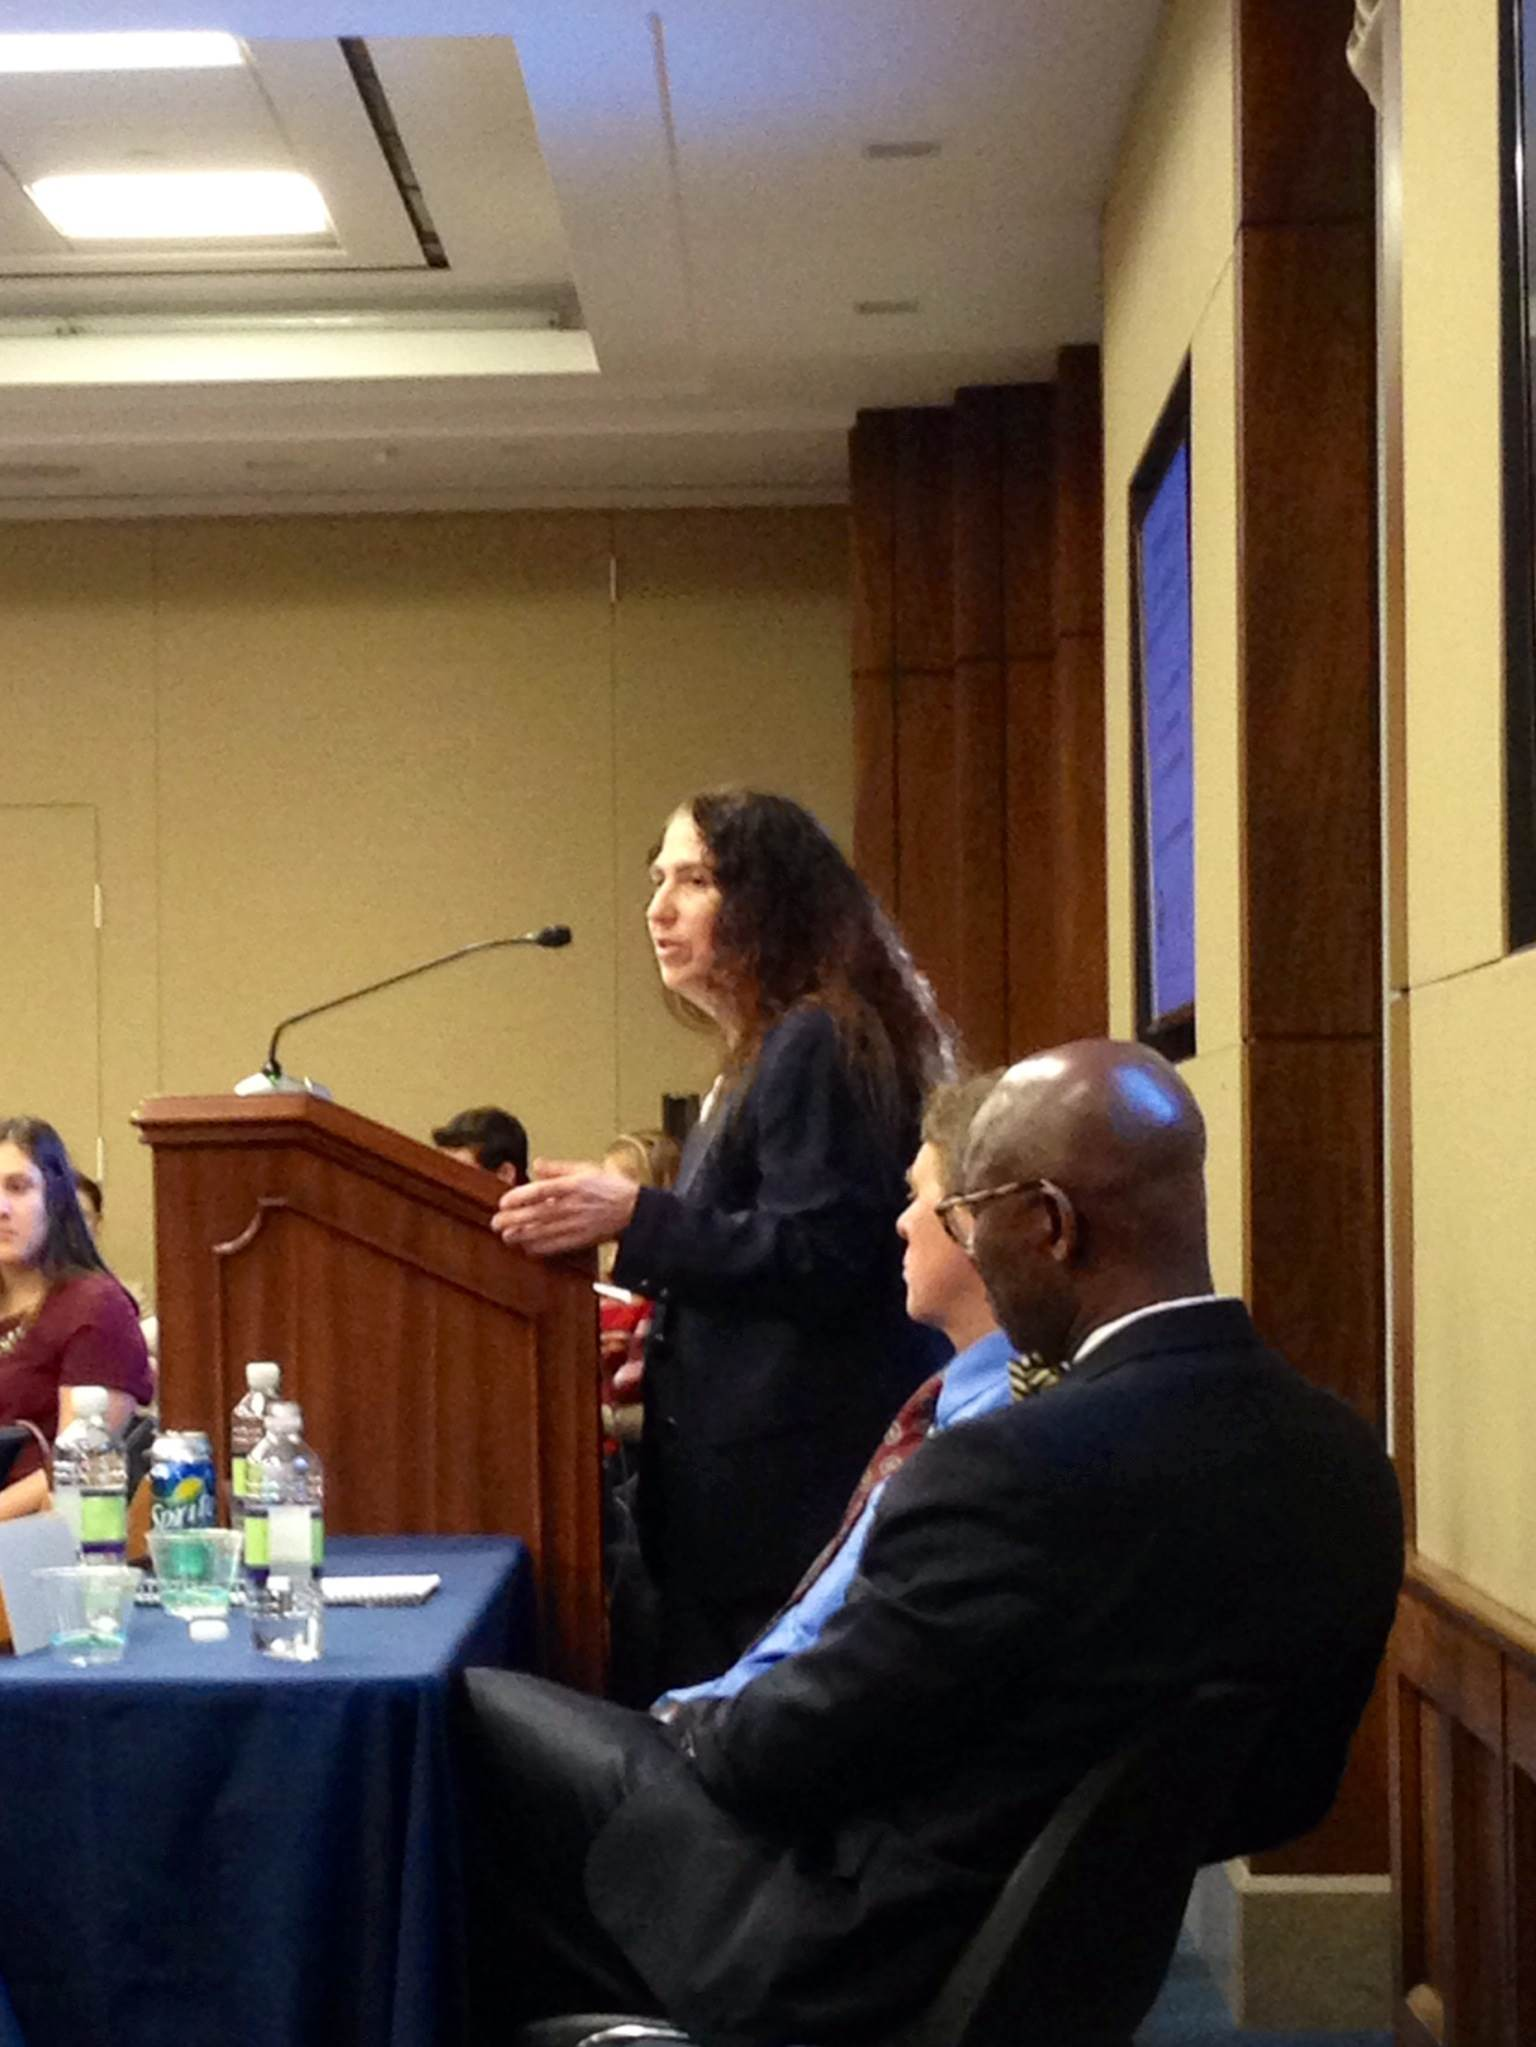 Nancy Amato presenting at the STEM Congressional Briefing